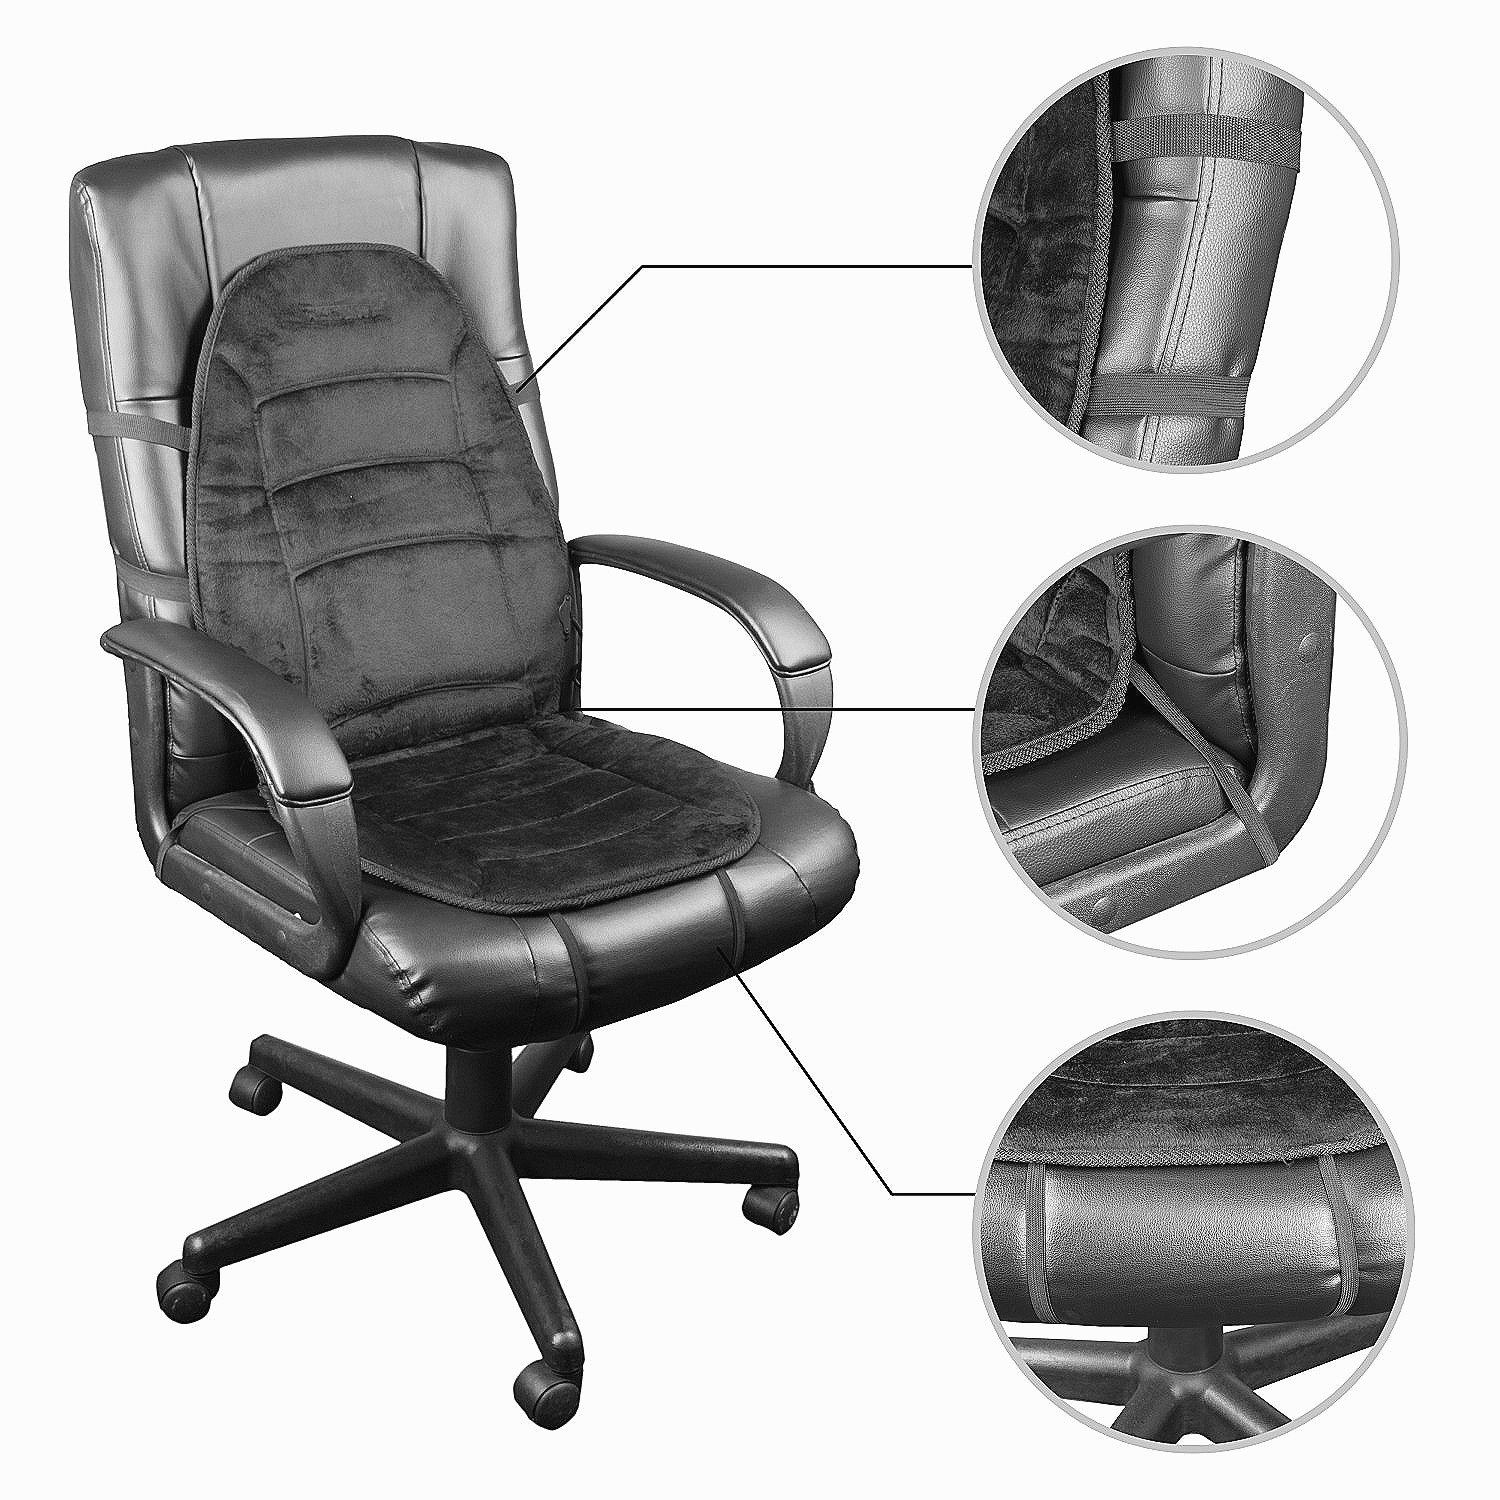 Heated Office Chair Pad Home Furniture Set Check More At Http